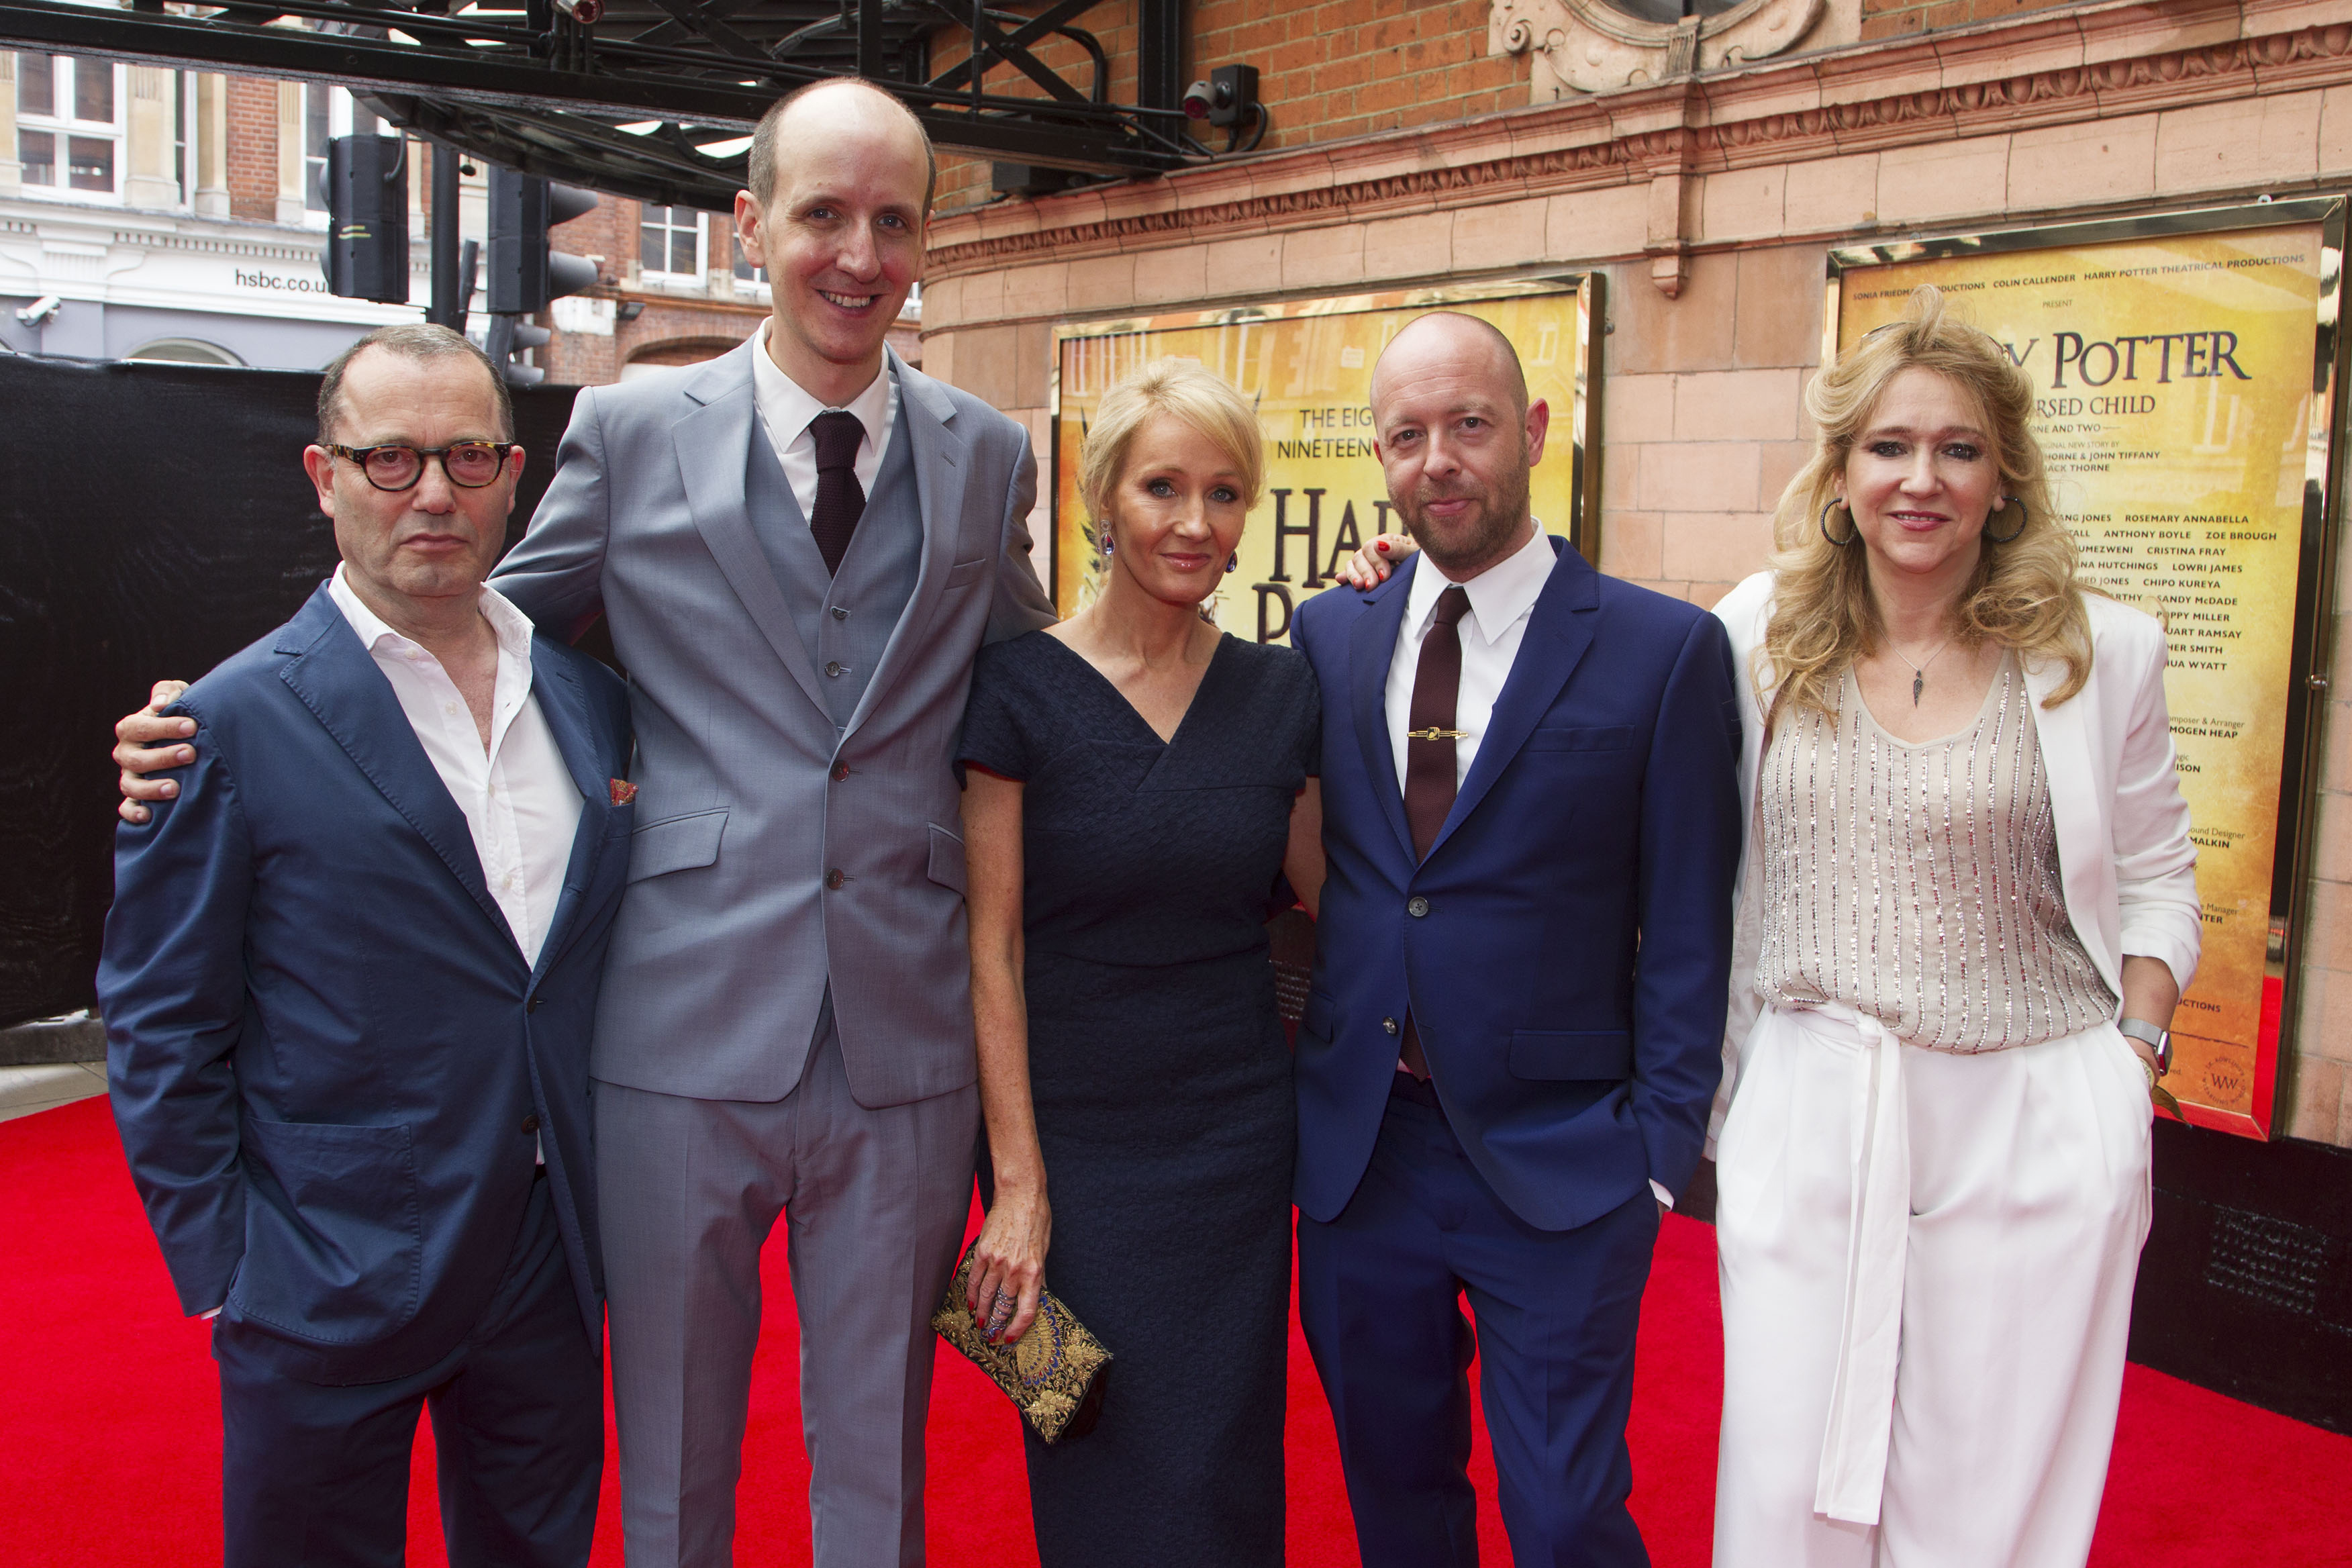 Colin Callender, Jack Thorne, J.K. Rowling, John Tiffany and Sonia Friedman at the West End Premiere of Harry Potter and the Cursed Child.